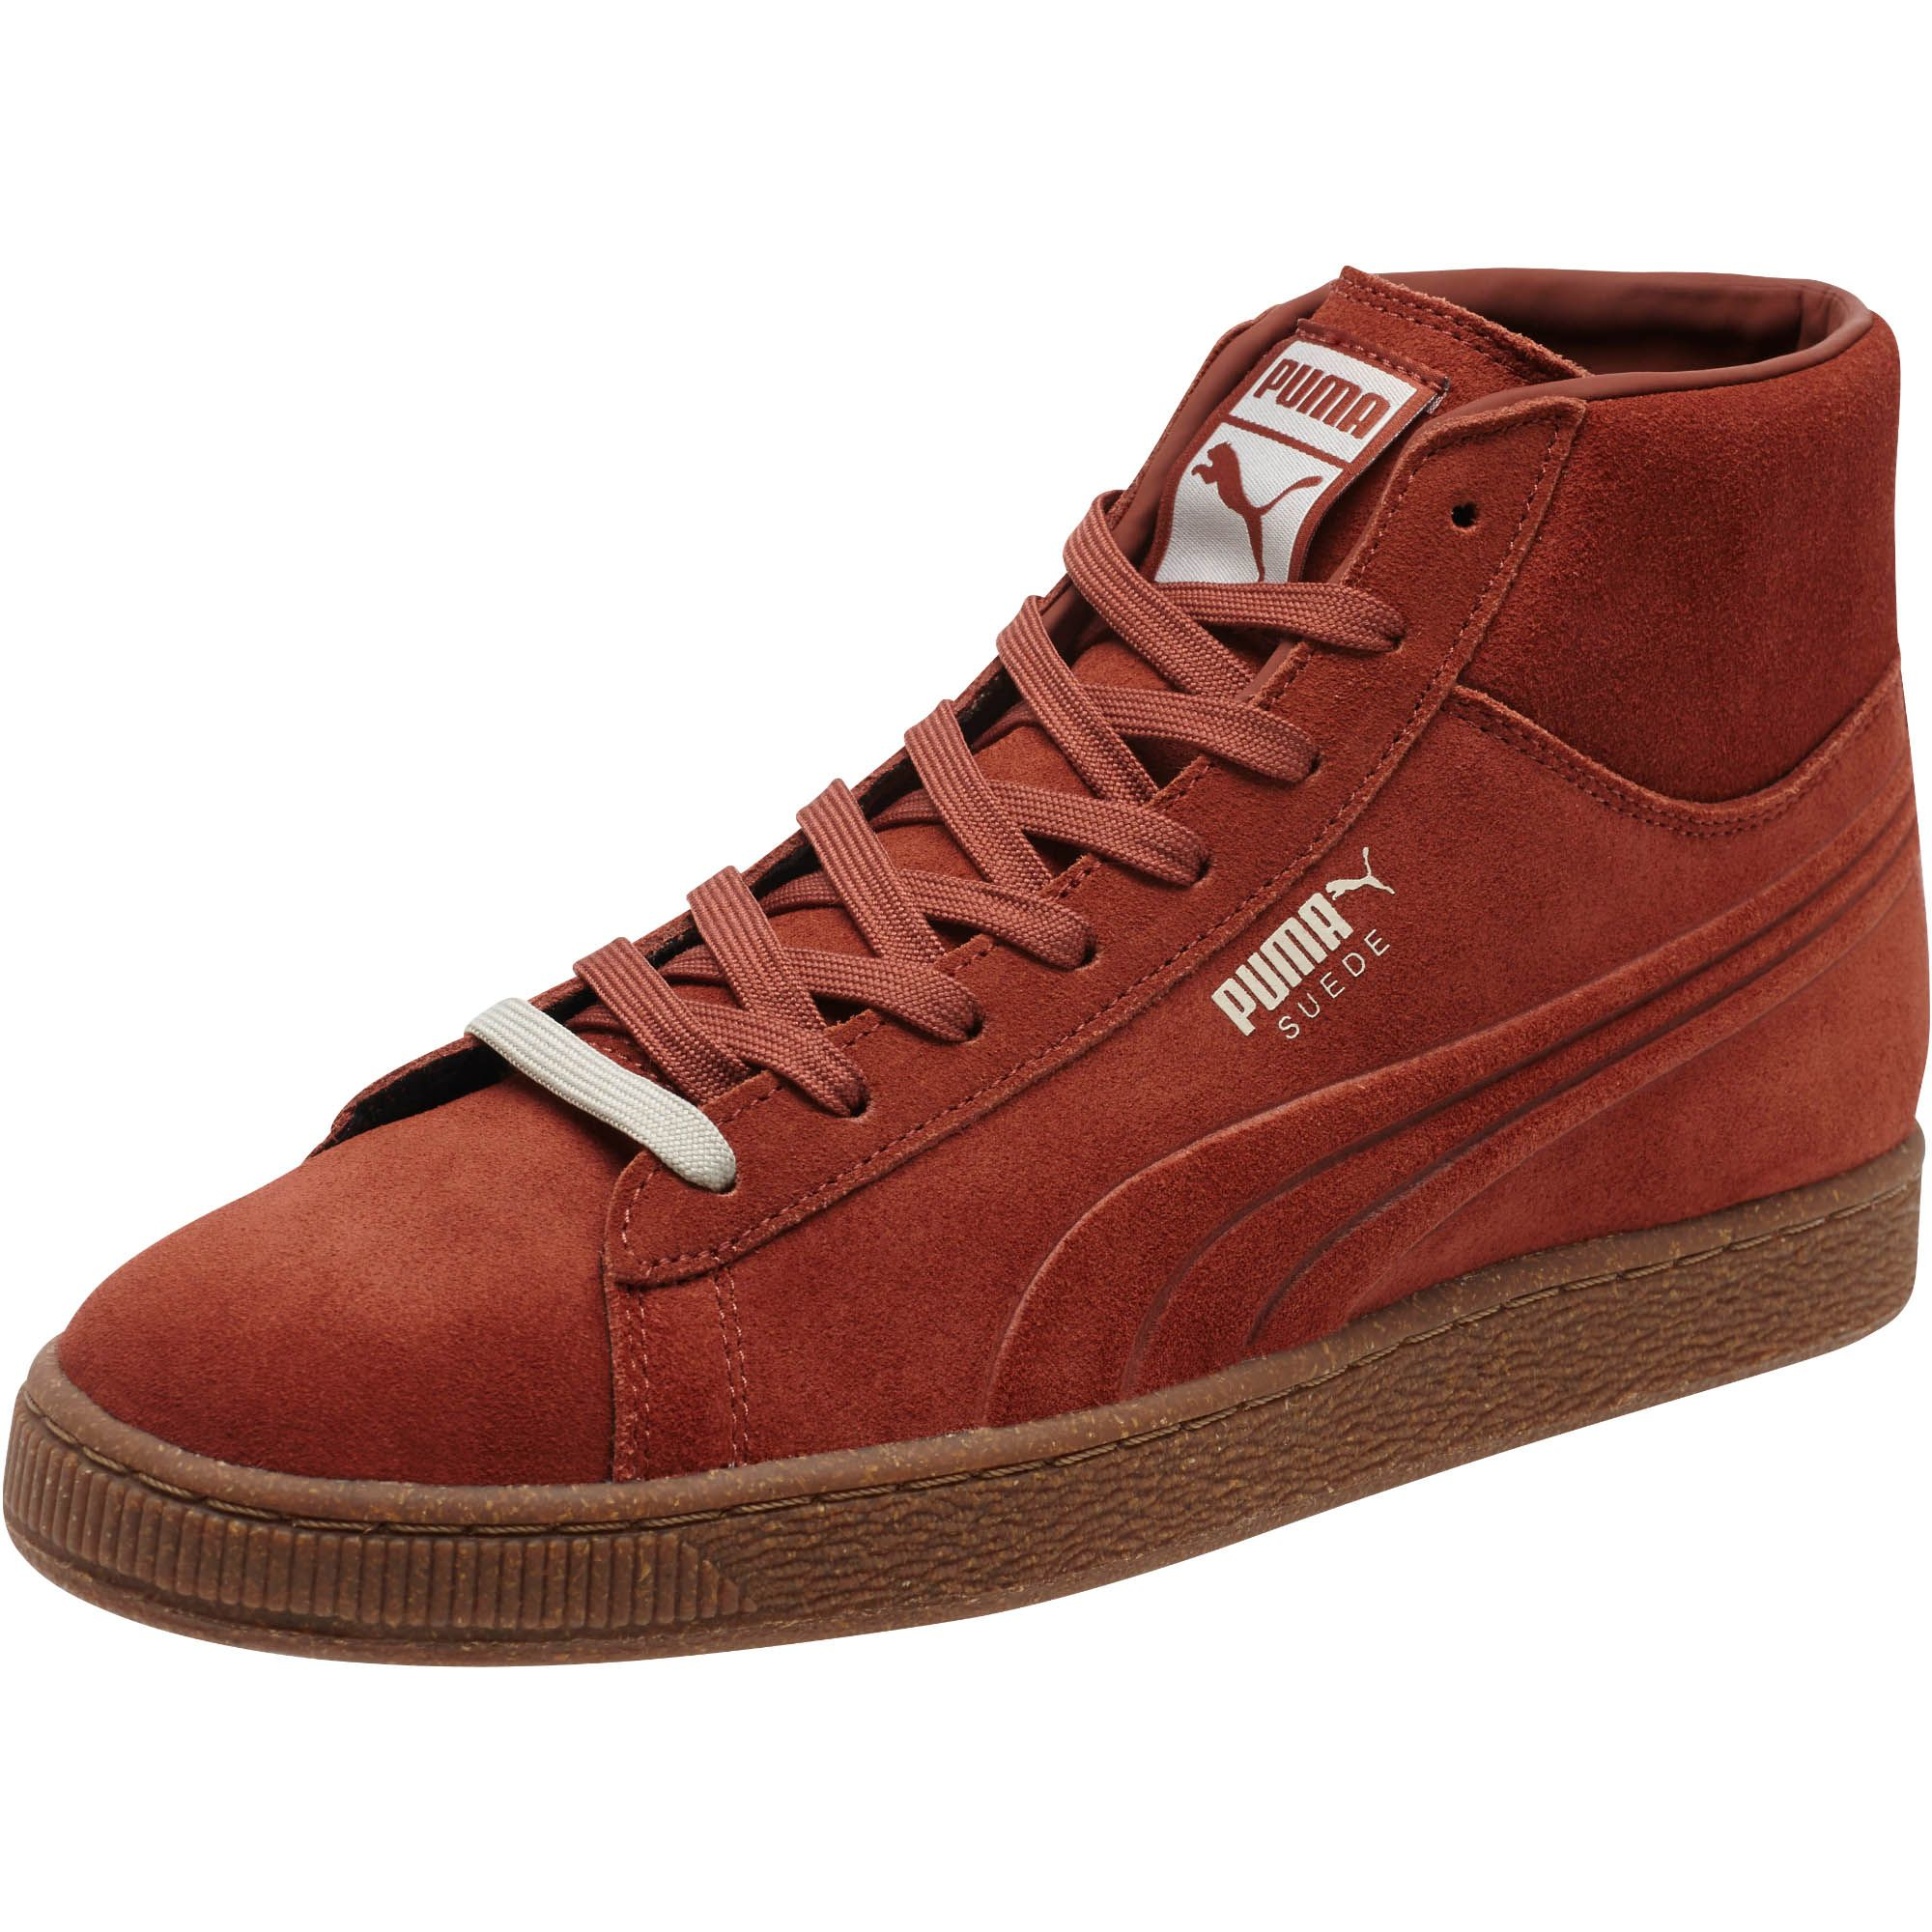 Puma Suede Embossed Mixed Rubber Mid Men S Sneakers In